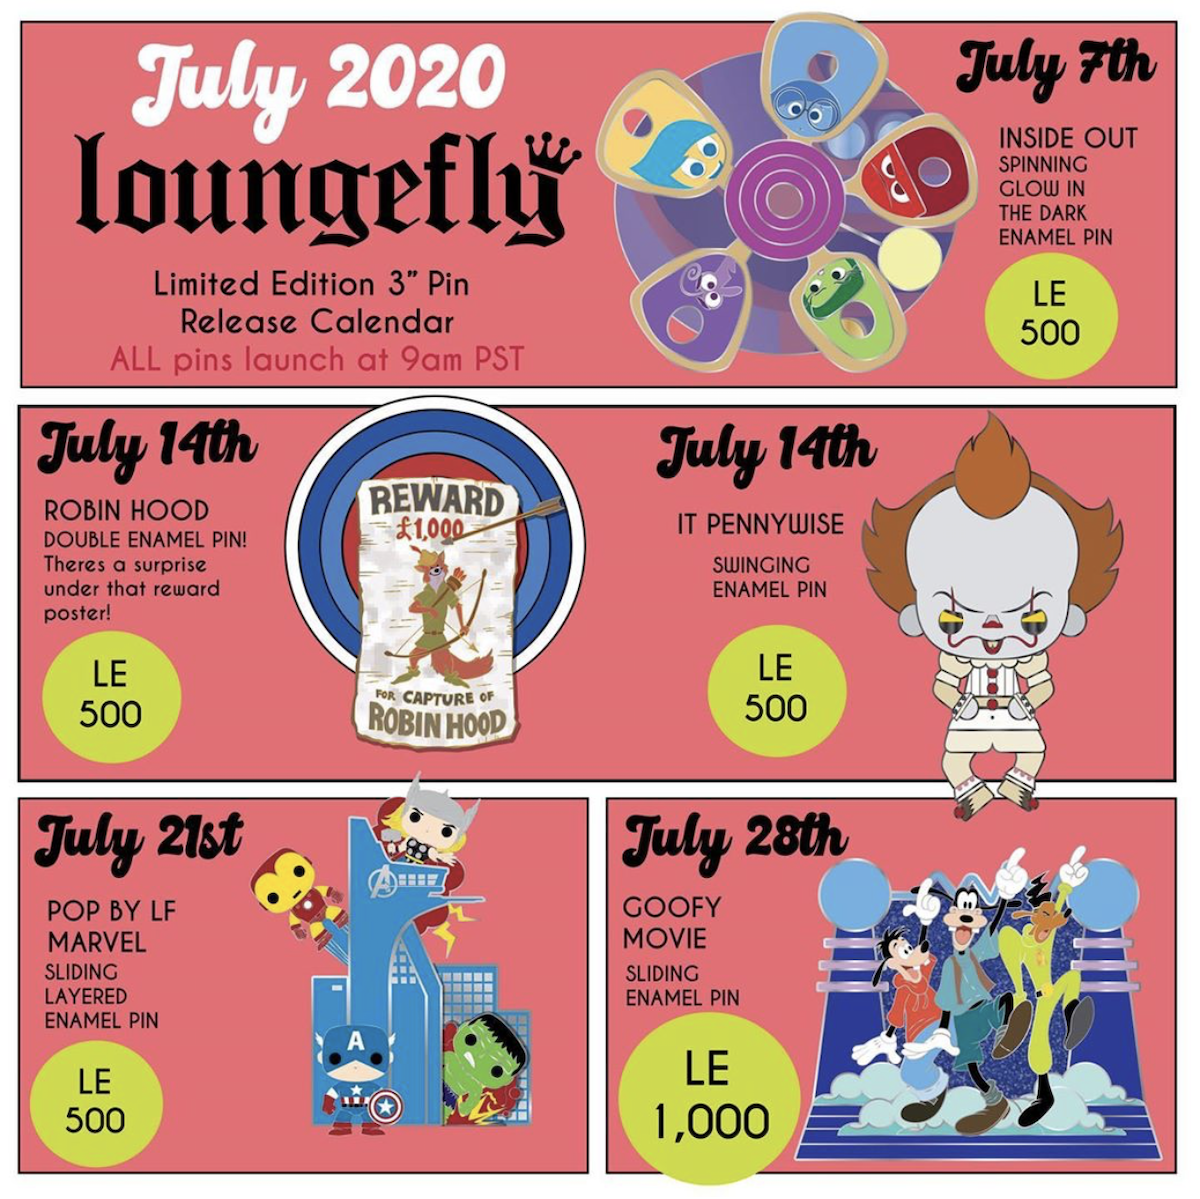 July 2020 Loungefly Disney Pin Preview